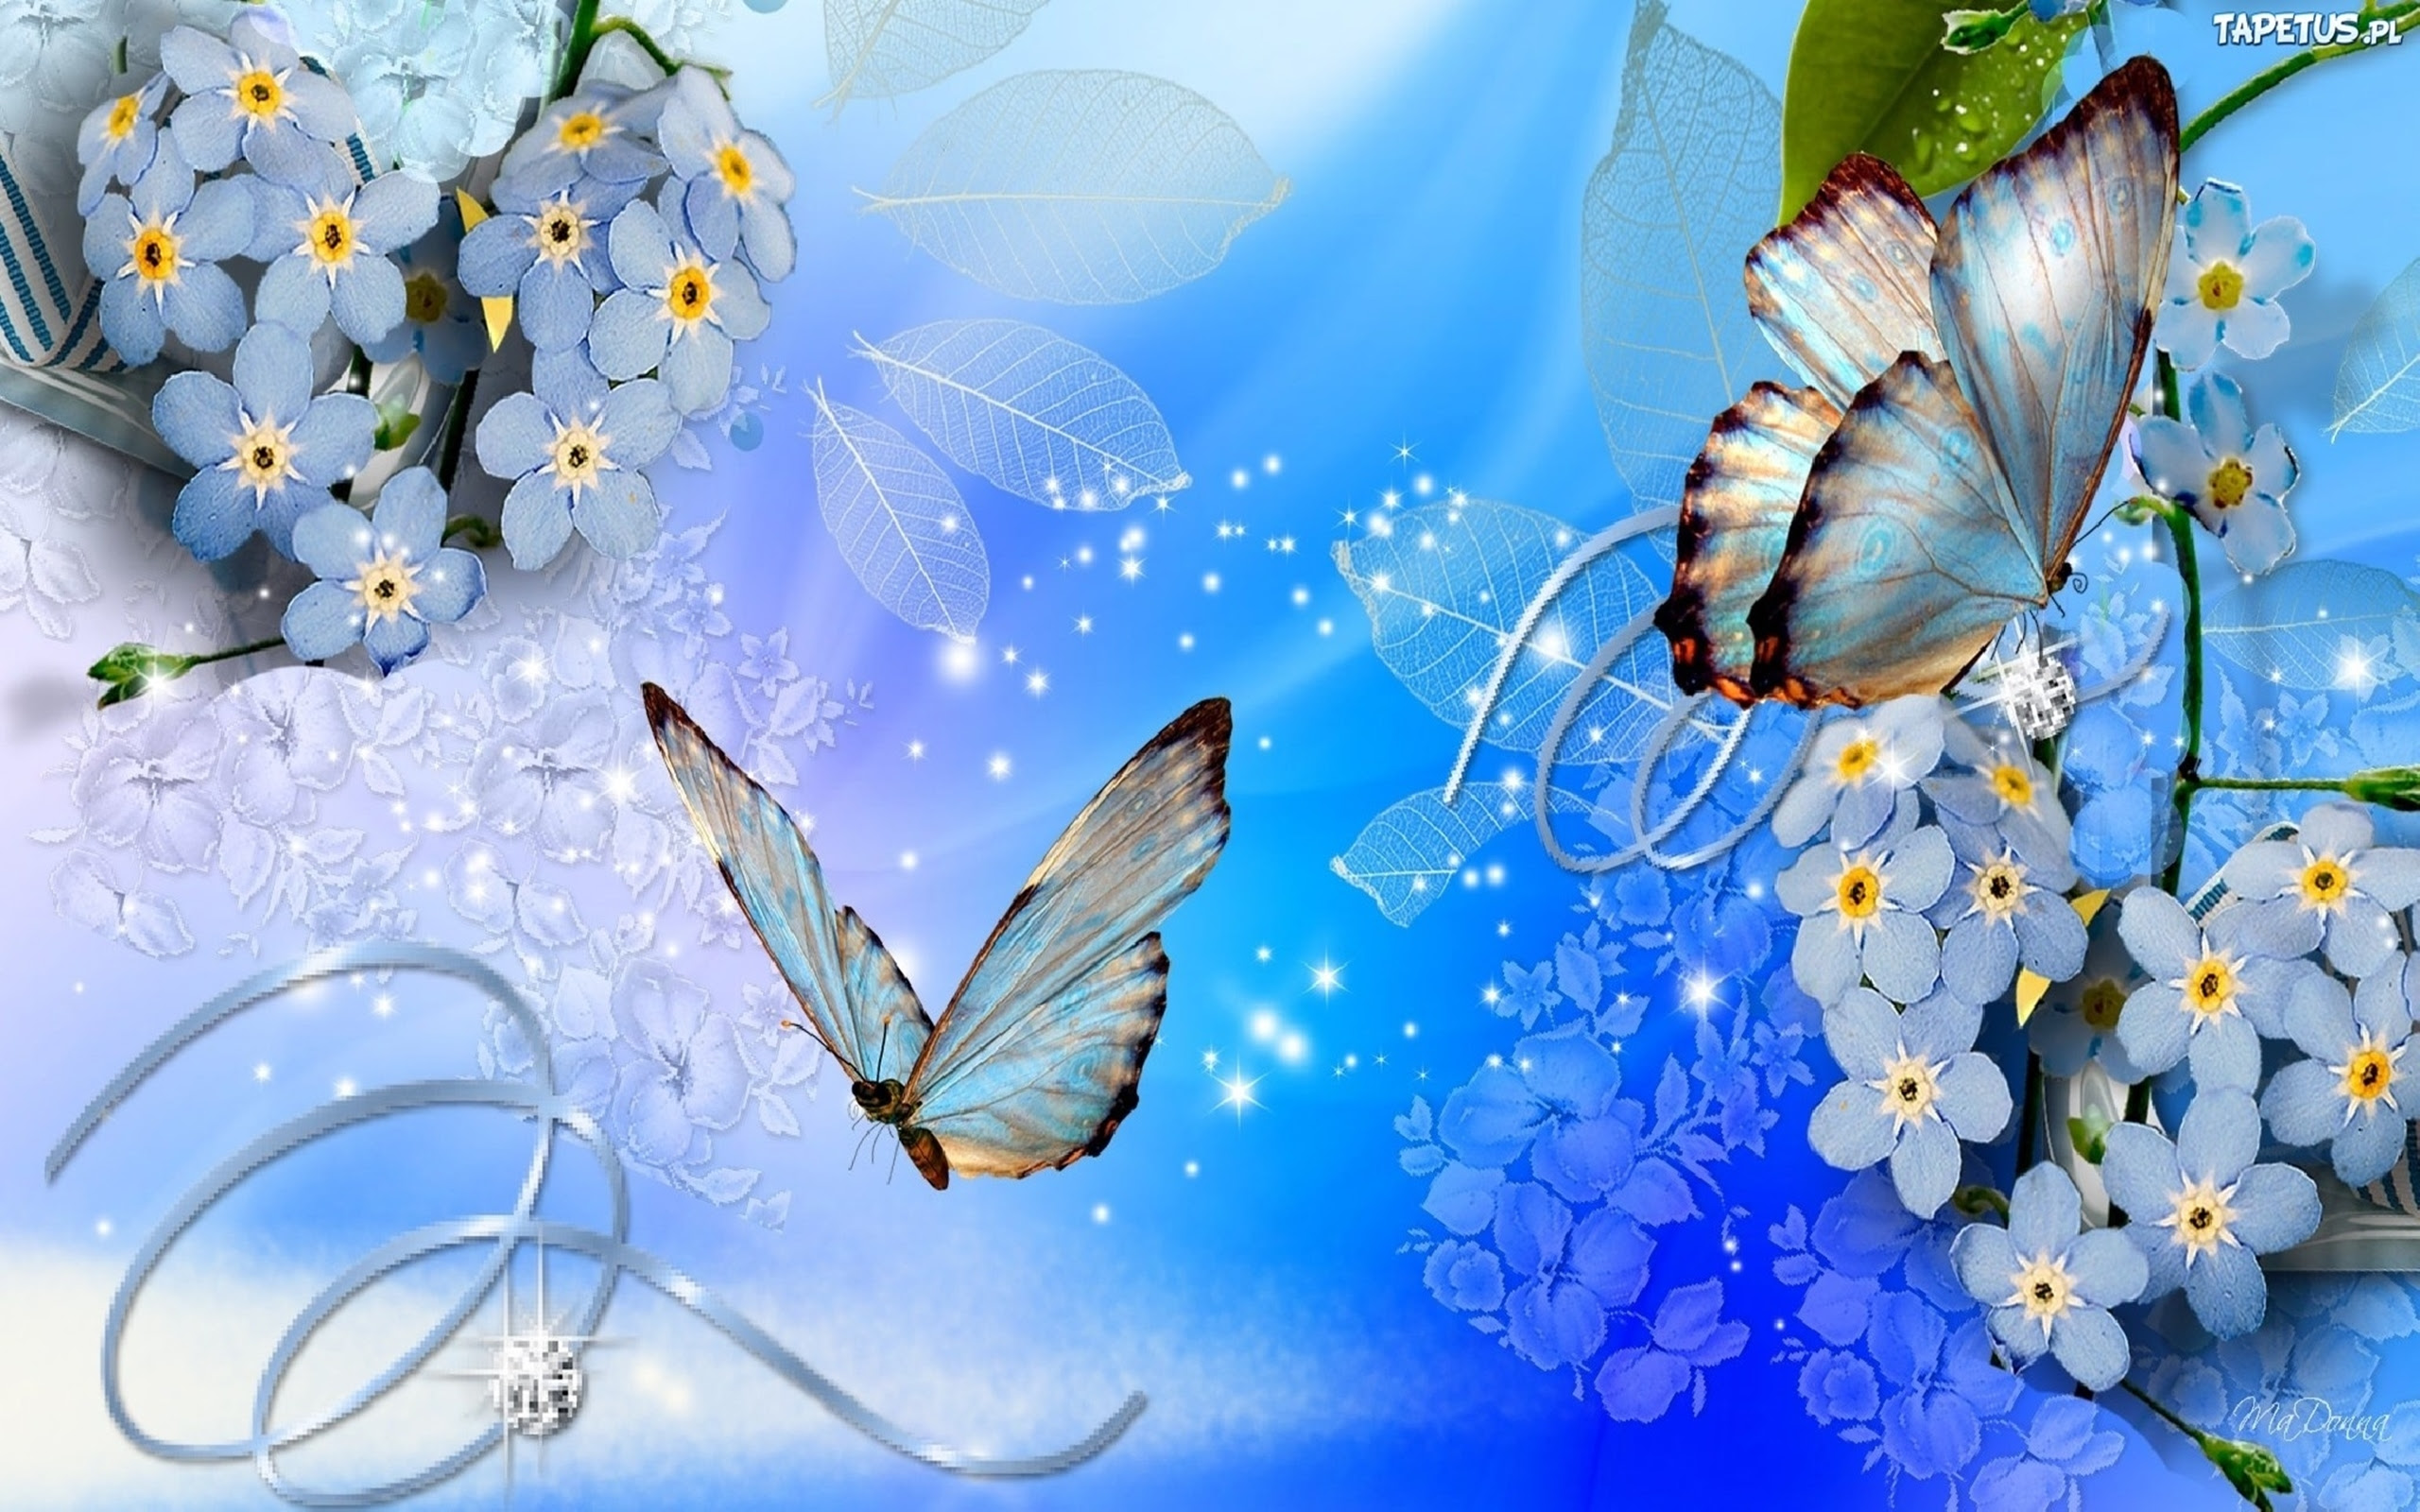 Butterflies And Flowers Background 586 : Wallpapers13.com